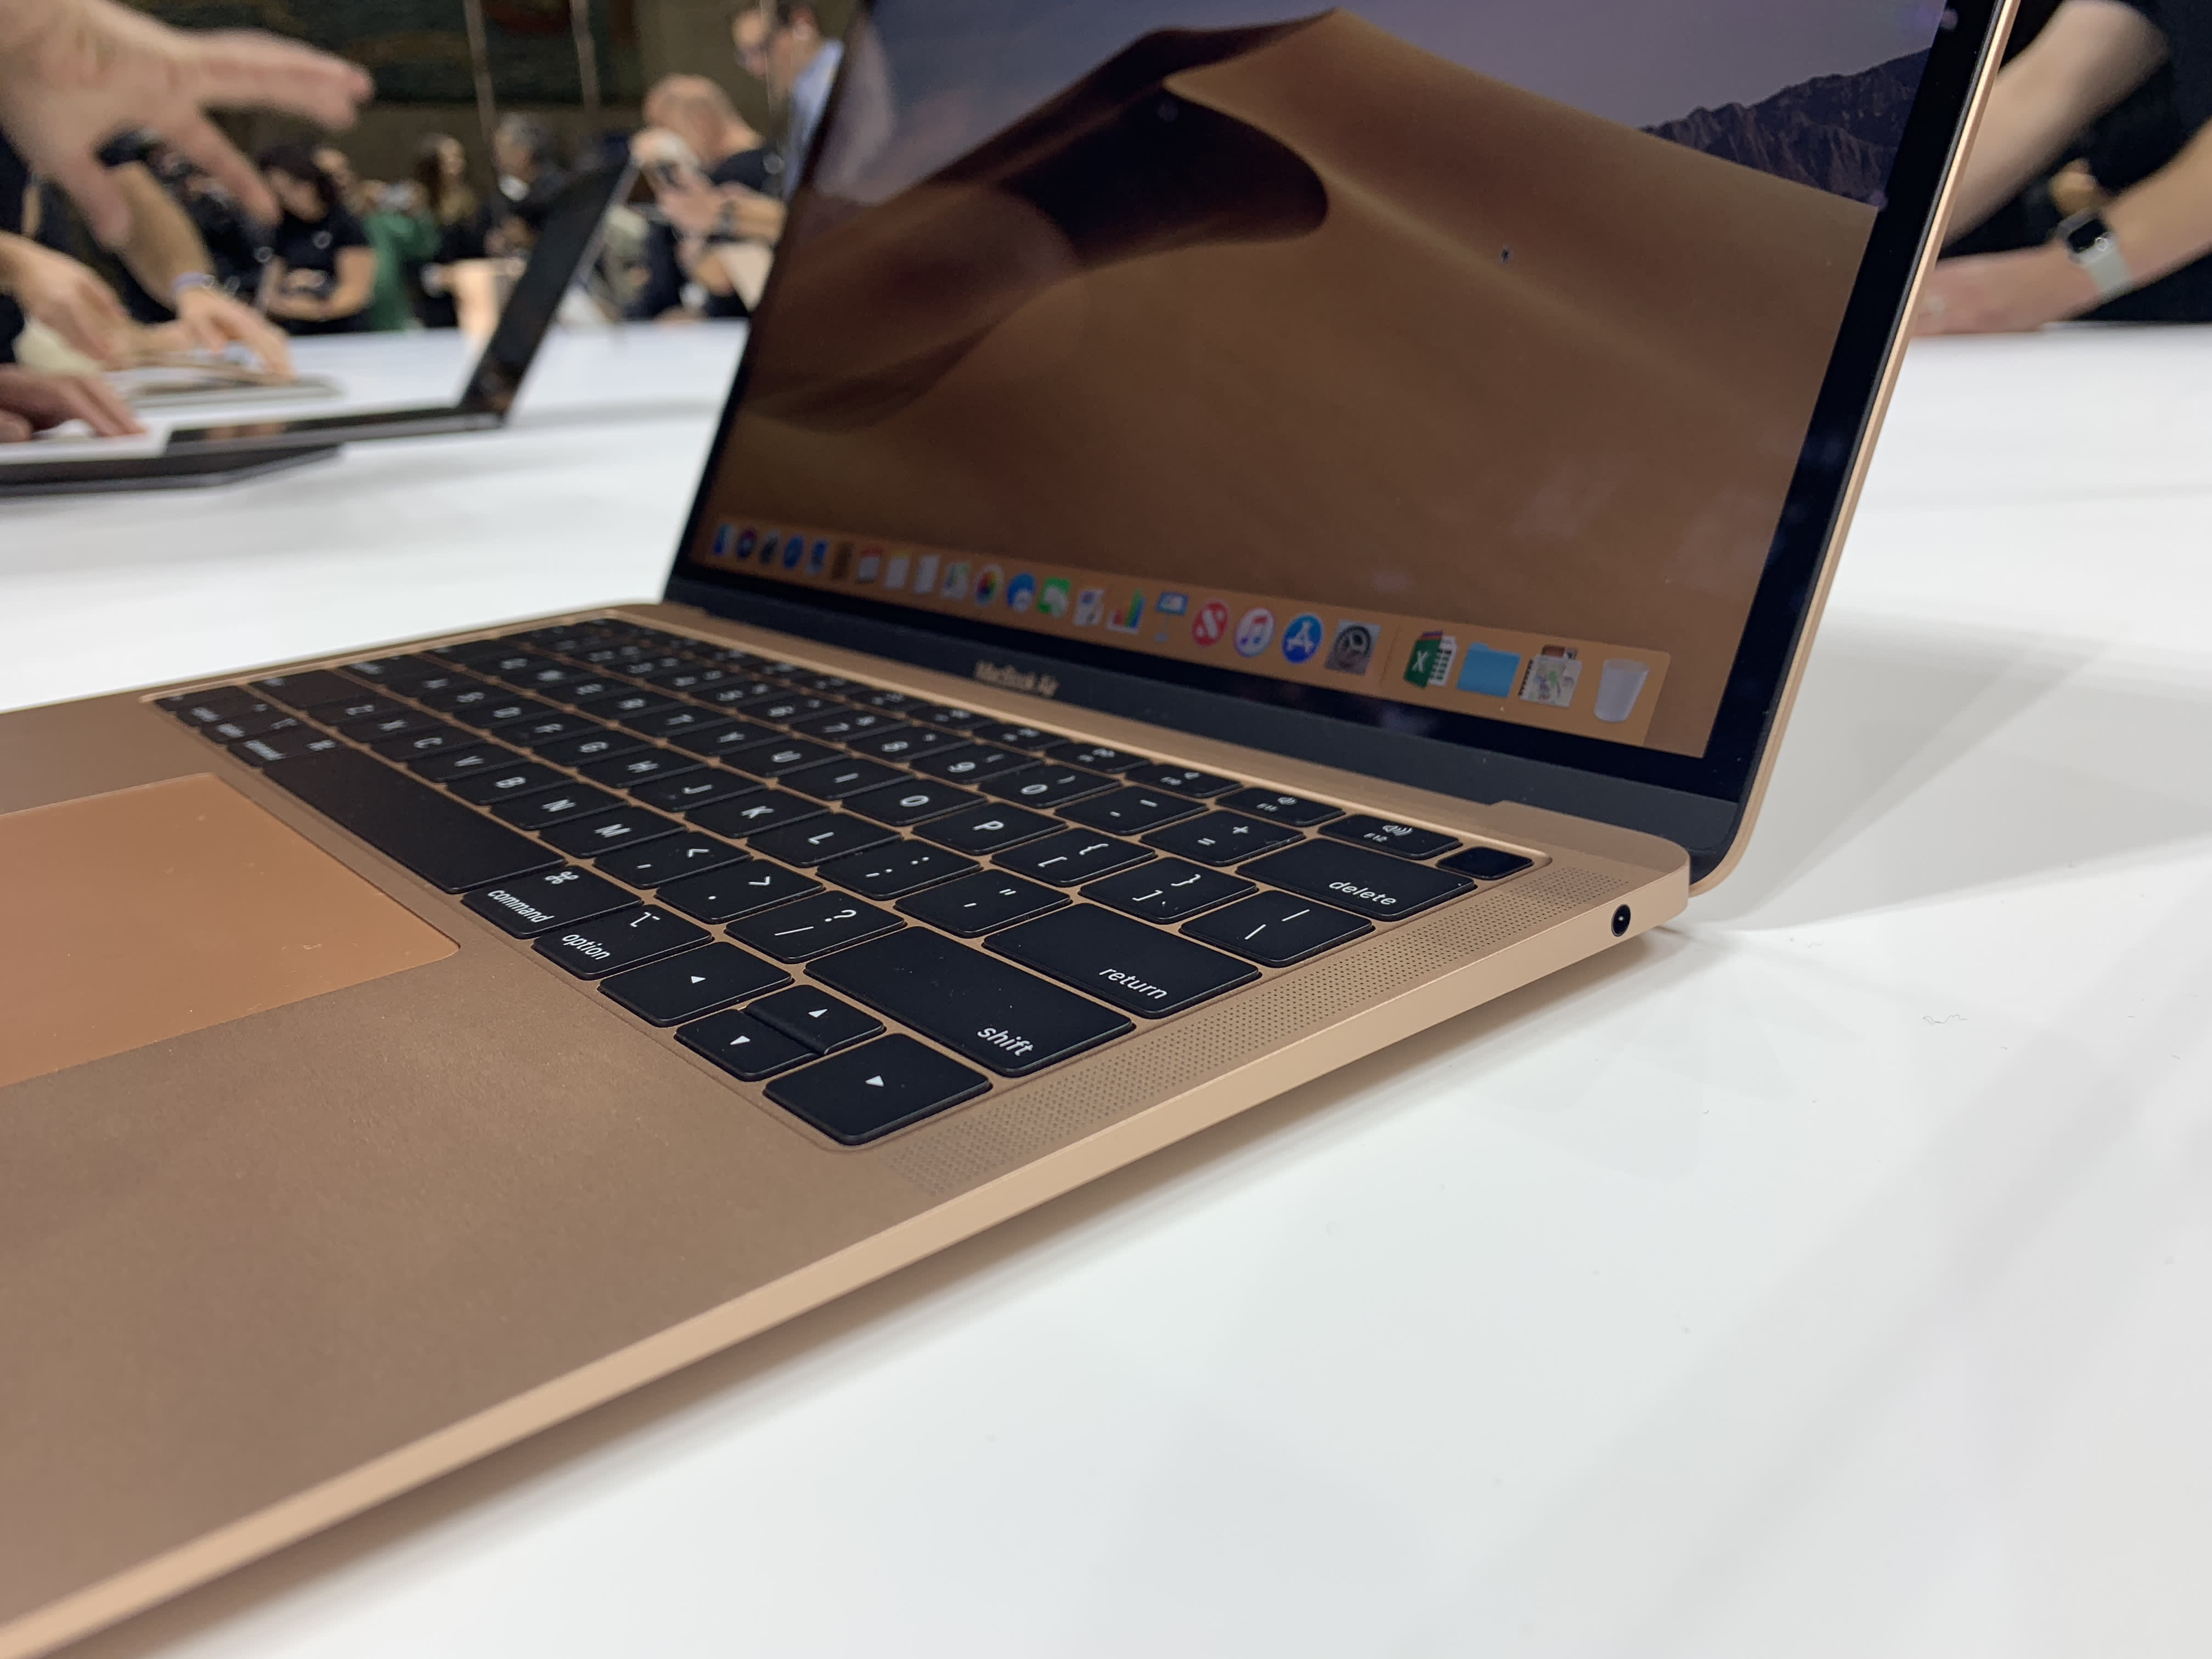 Apple's new MacBook Air blows the regular MacBook out of the water on price  and power